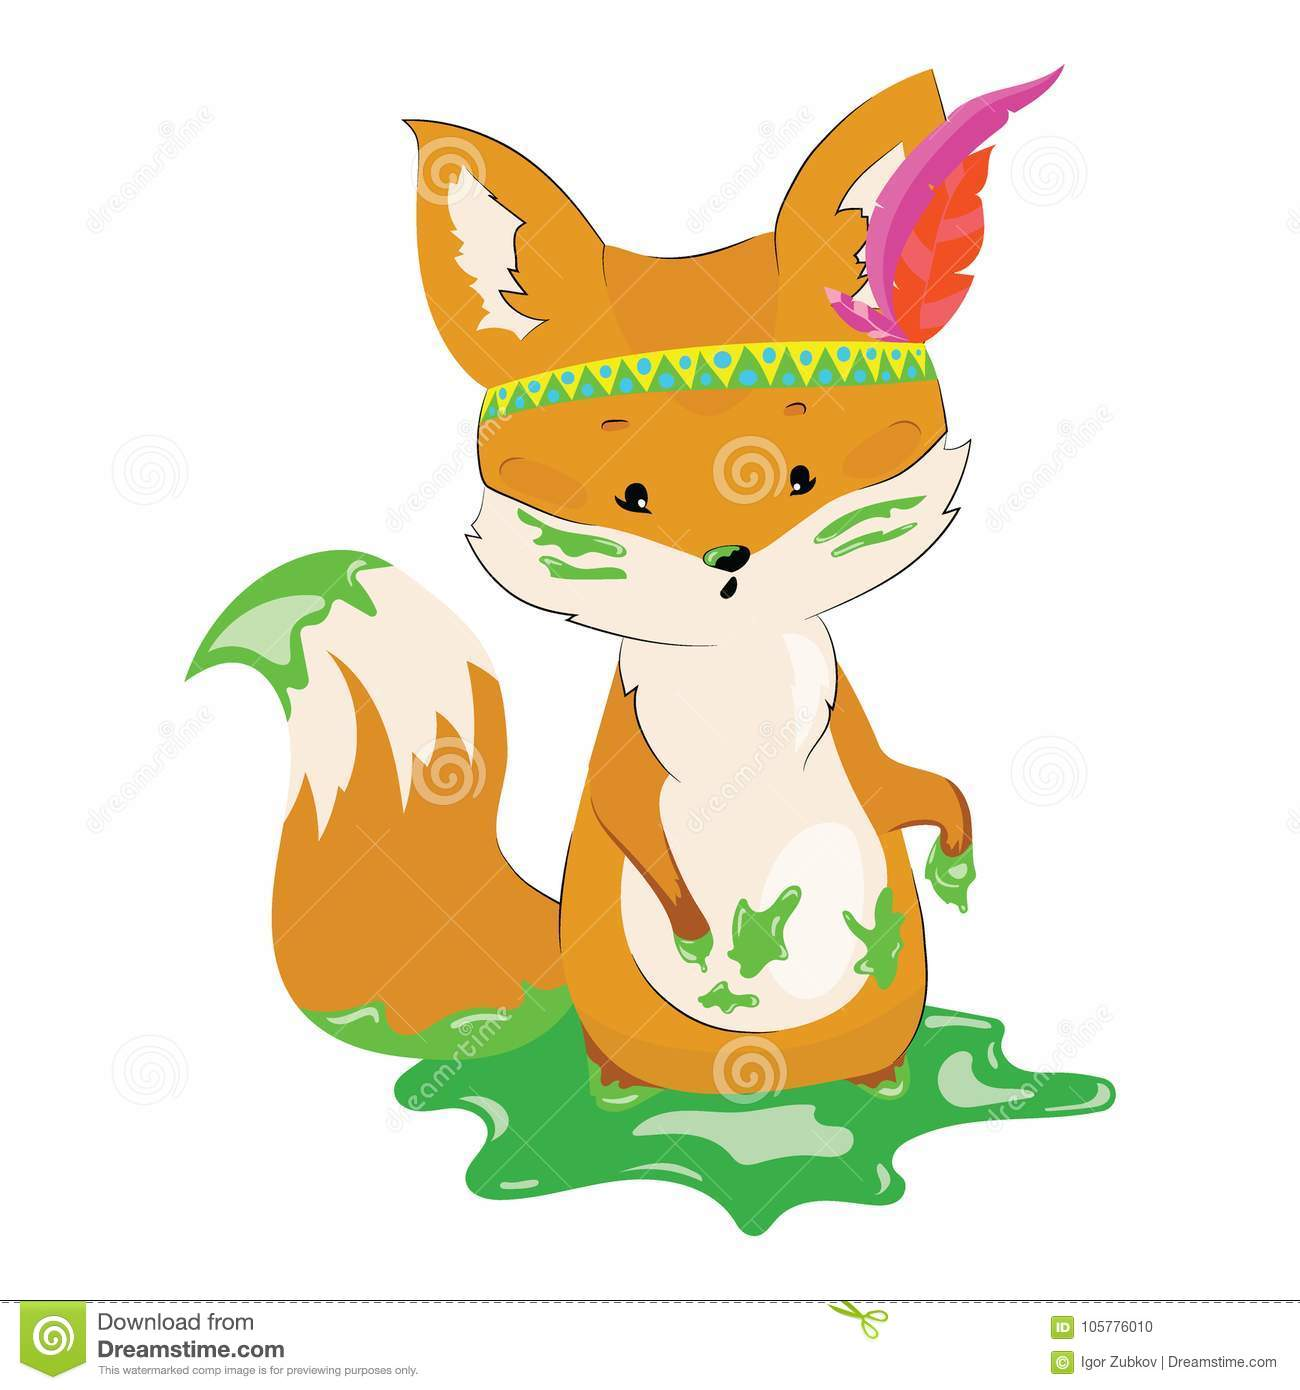 hight resolution of cartoon fox with an indian headdress made of feathers on his head lovely stylized fox